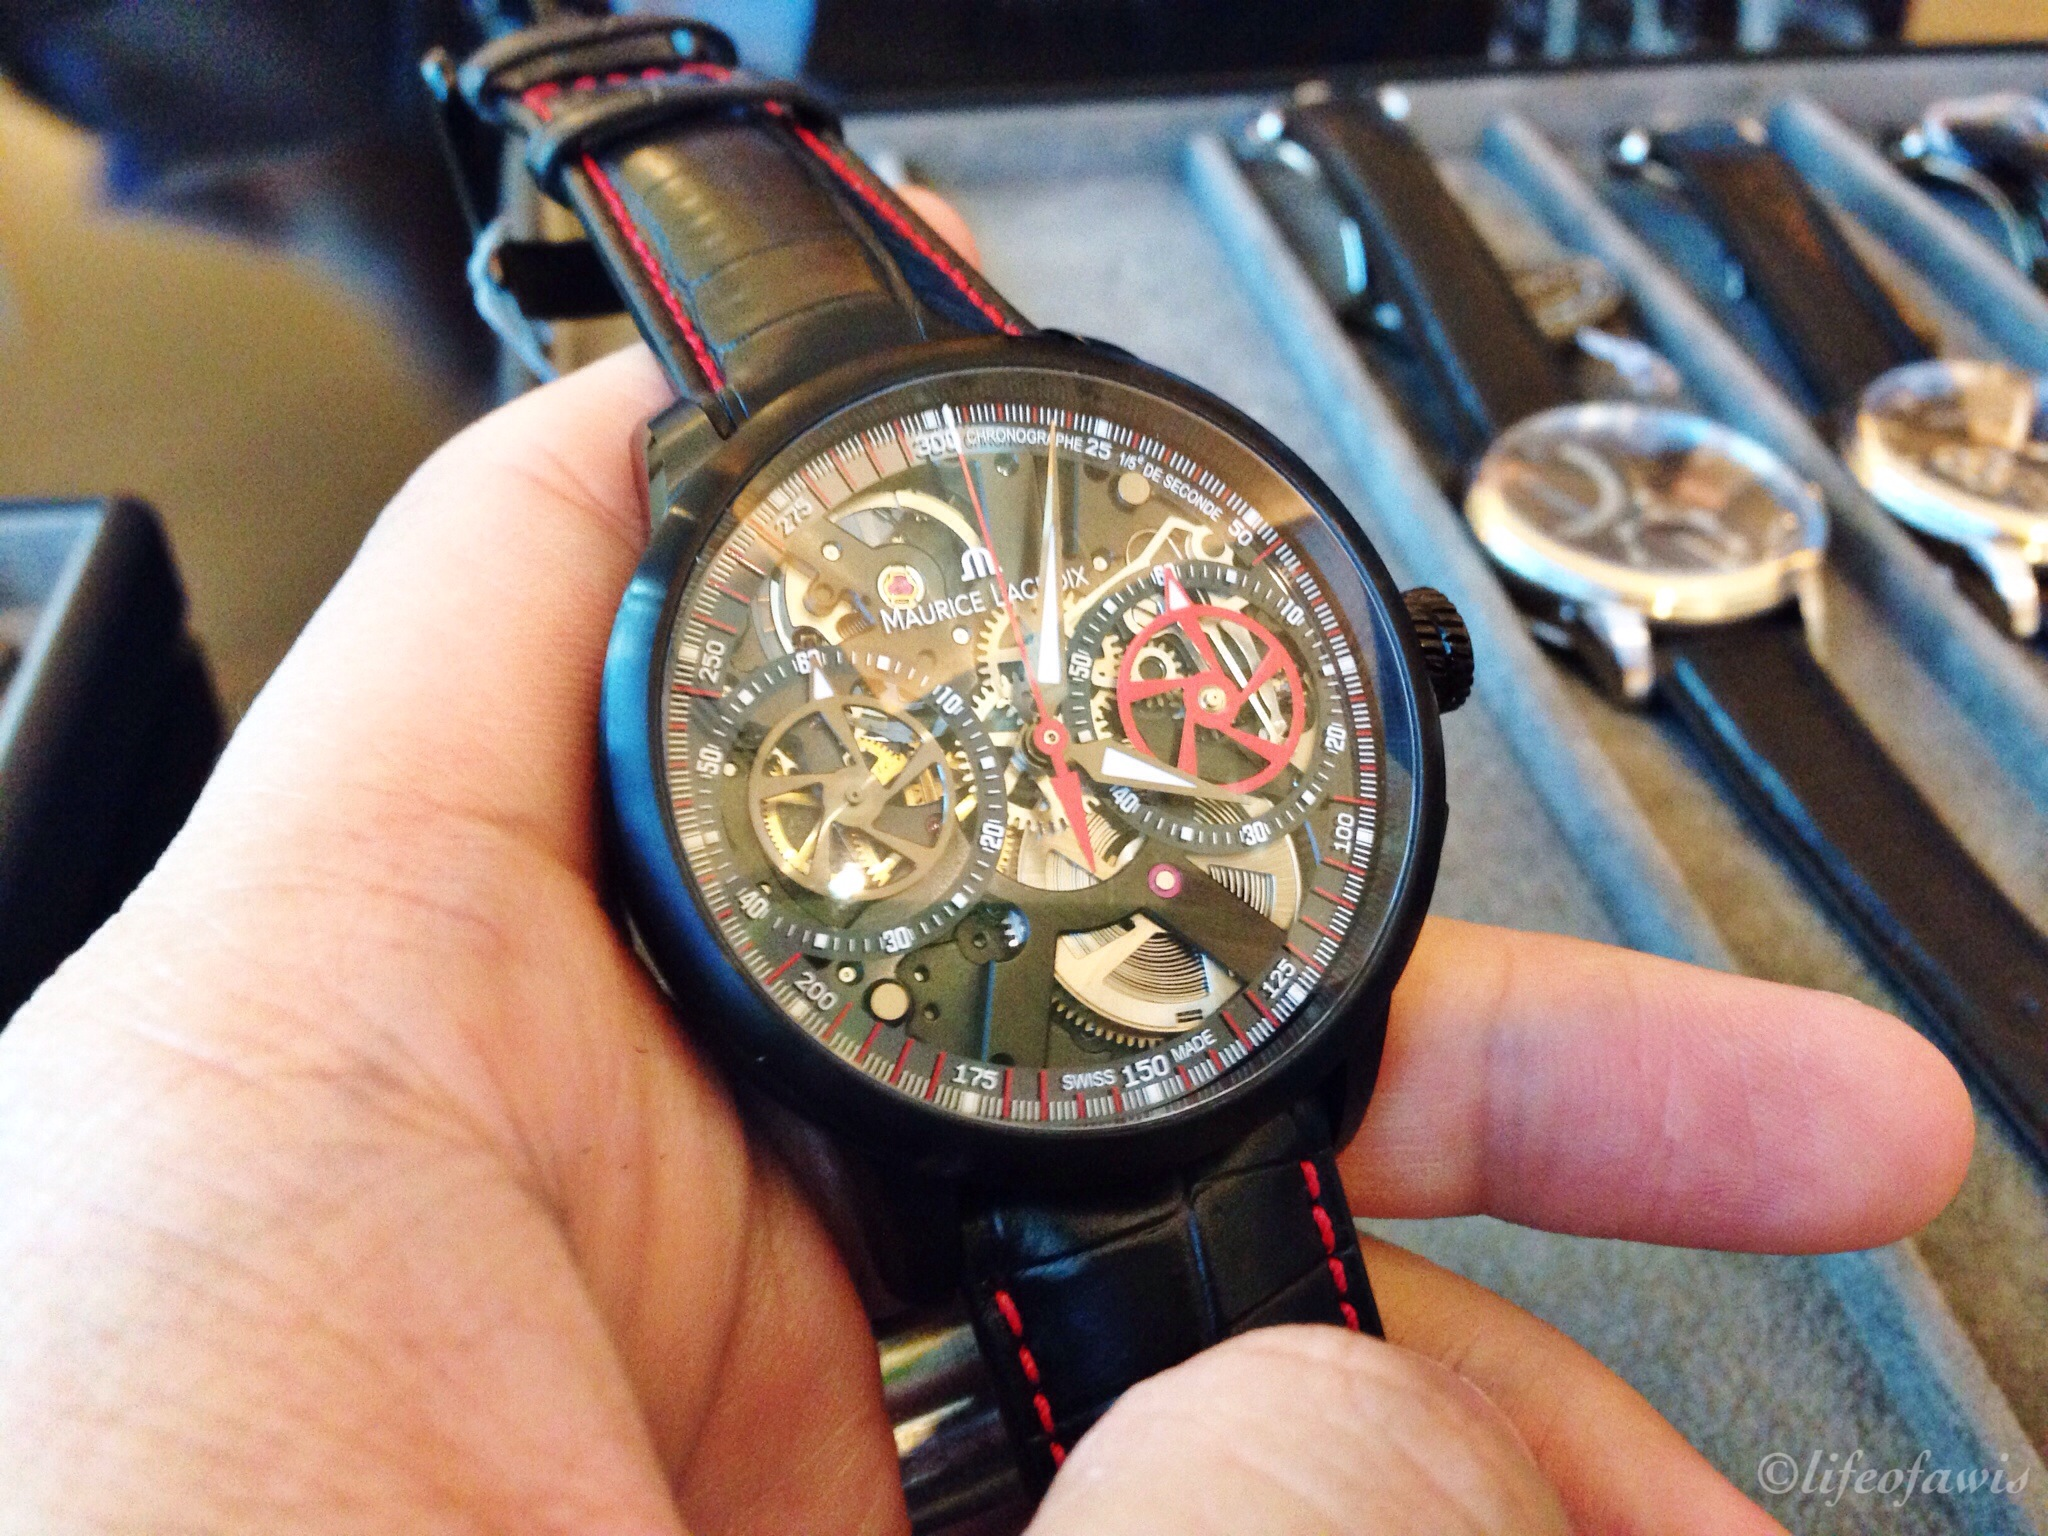 Masterpiece Limited Edition Chronographe Squelette. Limited to 188 pieces.